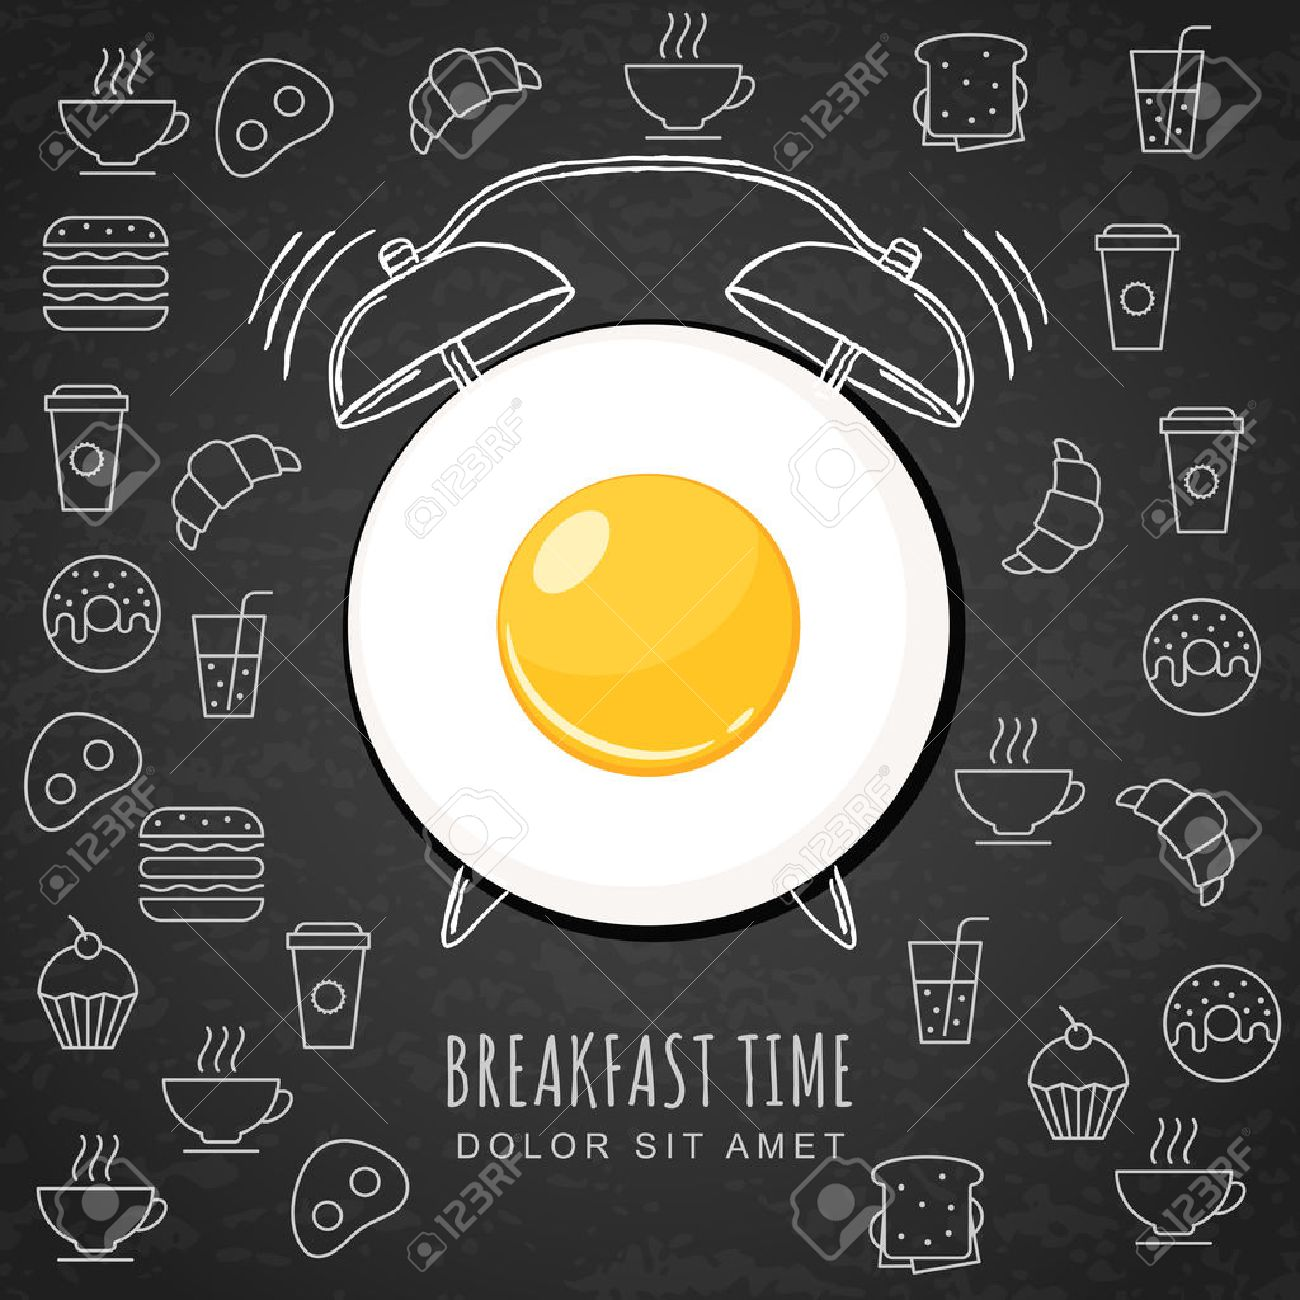 Fried egg and hand drawn watercolor alarm clock on textured black board background with outline food icons. Vector design for breakfast menu, cafe, restaurant. Fast food background. - 52160856